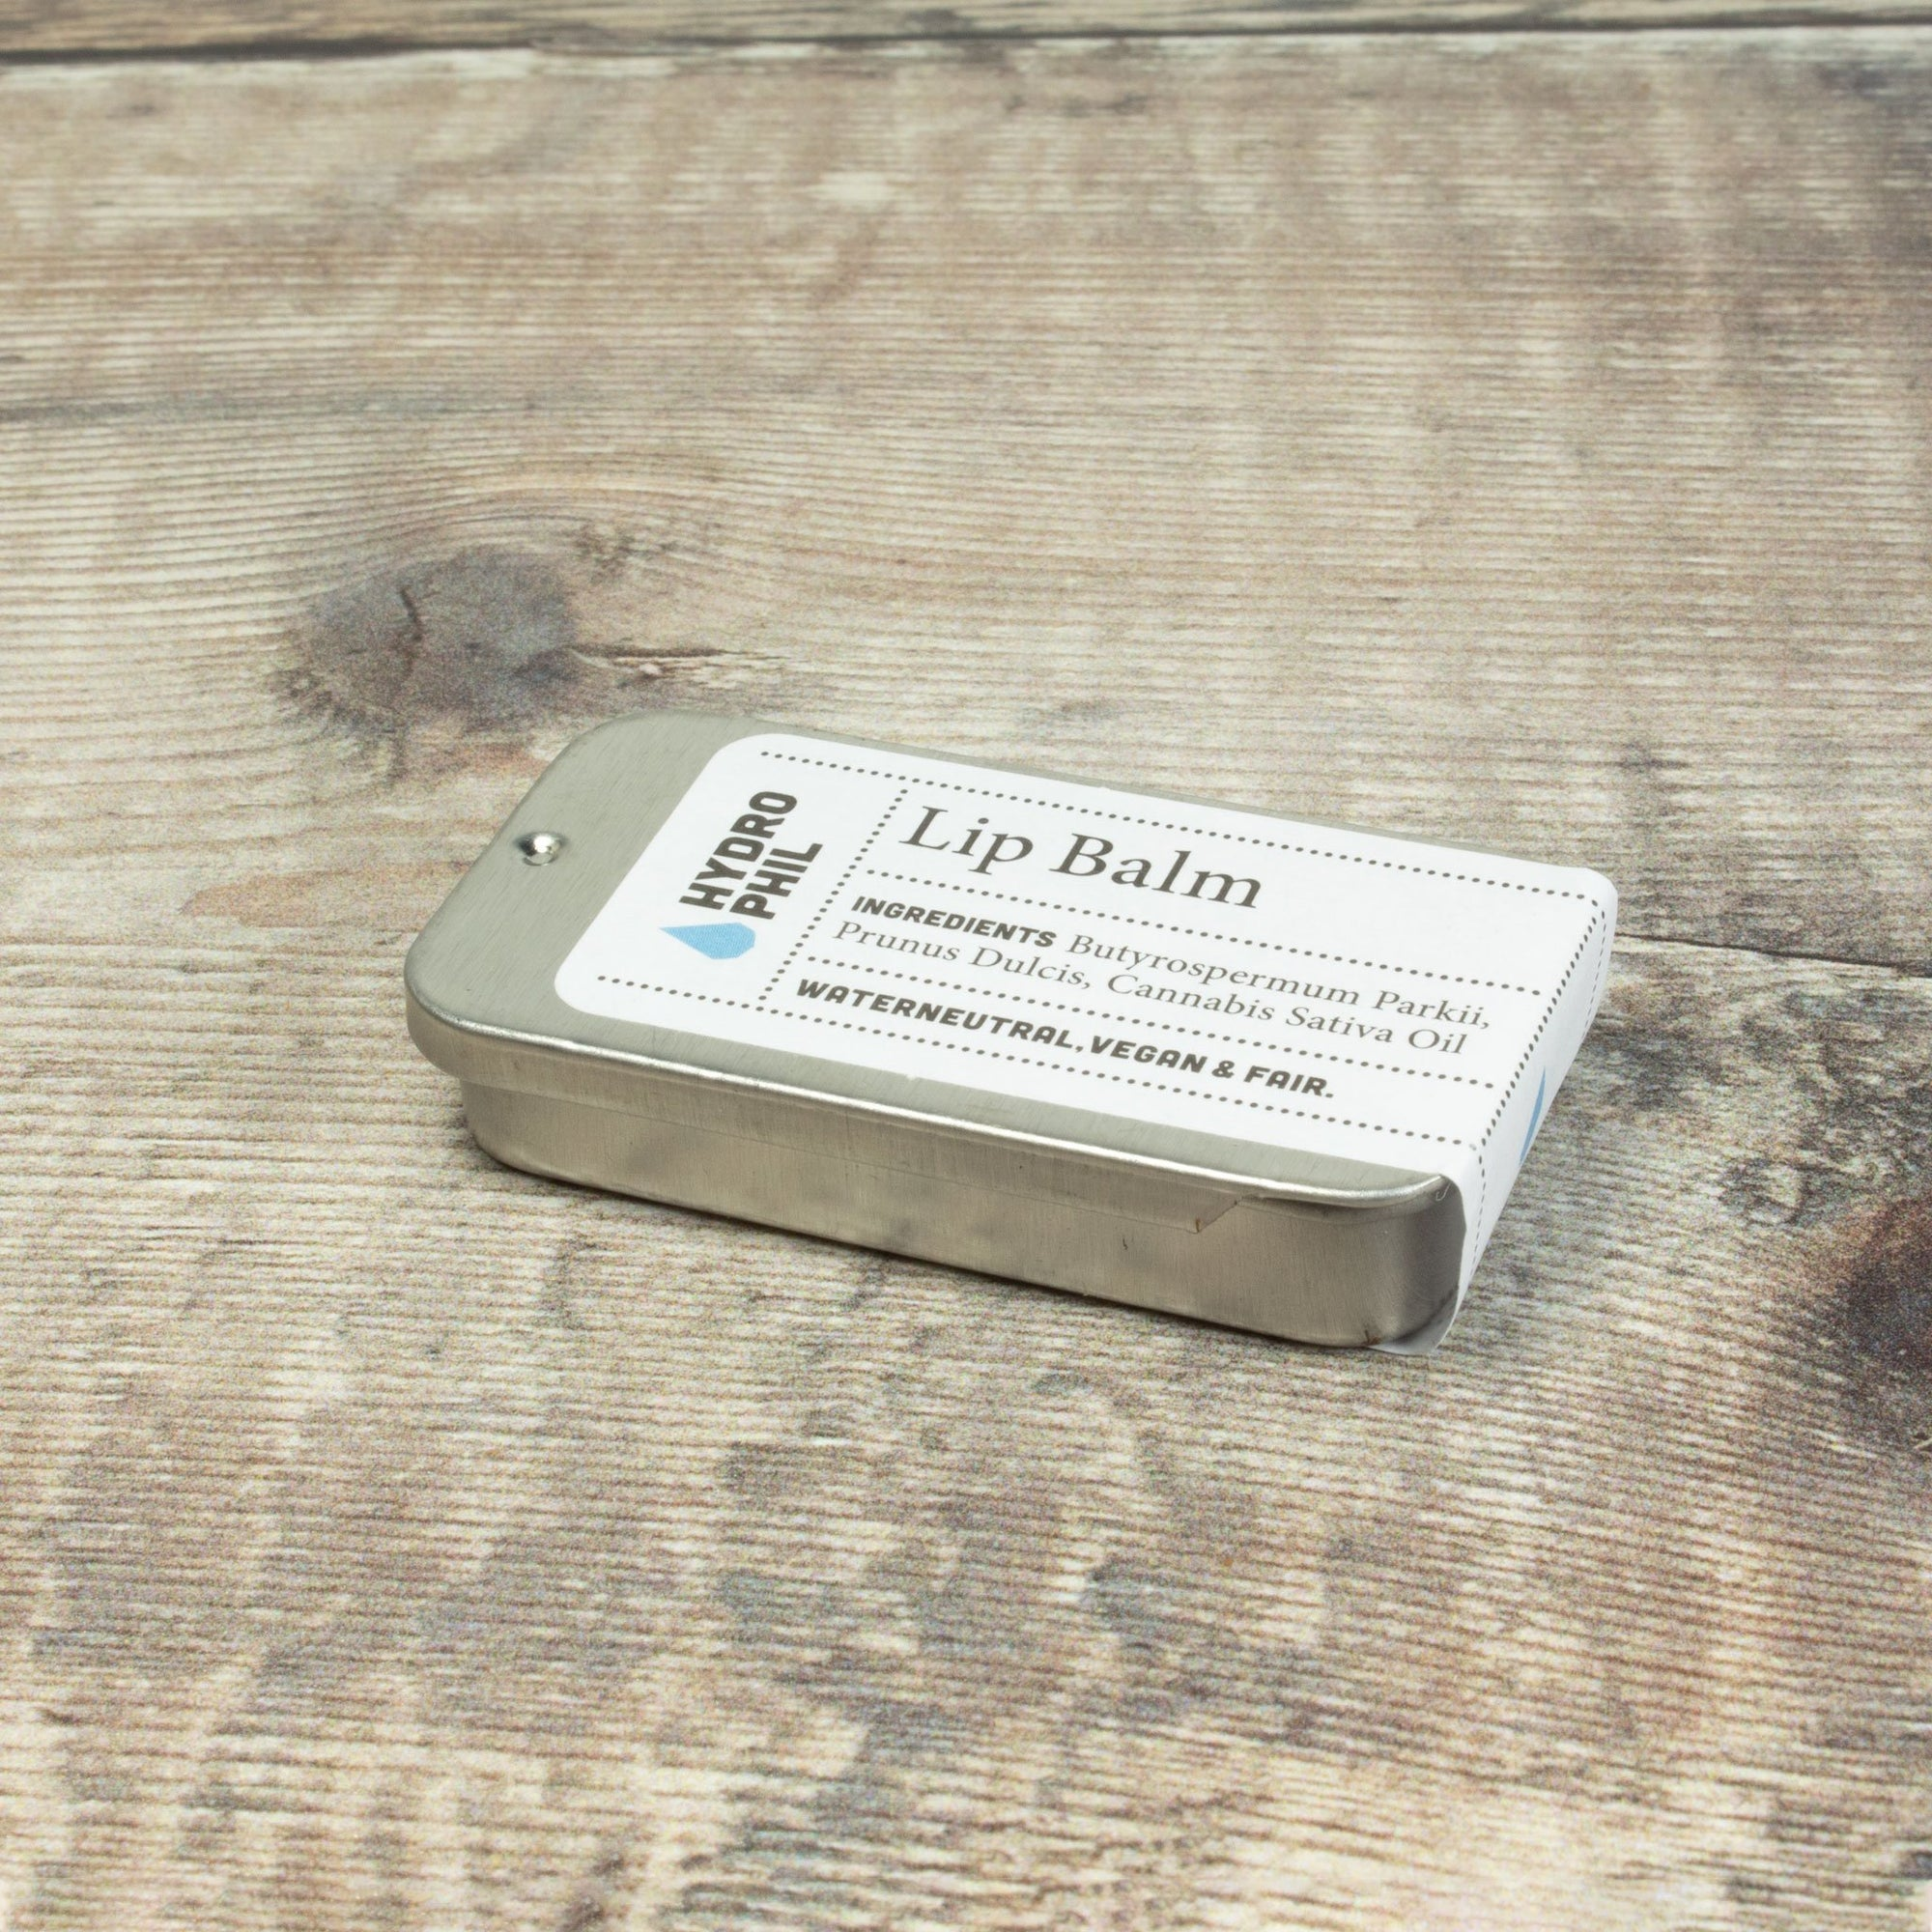 Lip Balm | Lip Balm - The Naughty Shrew